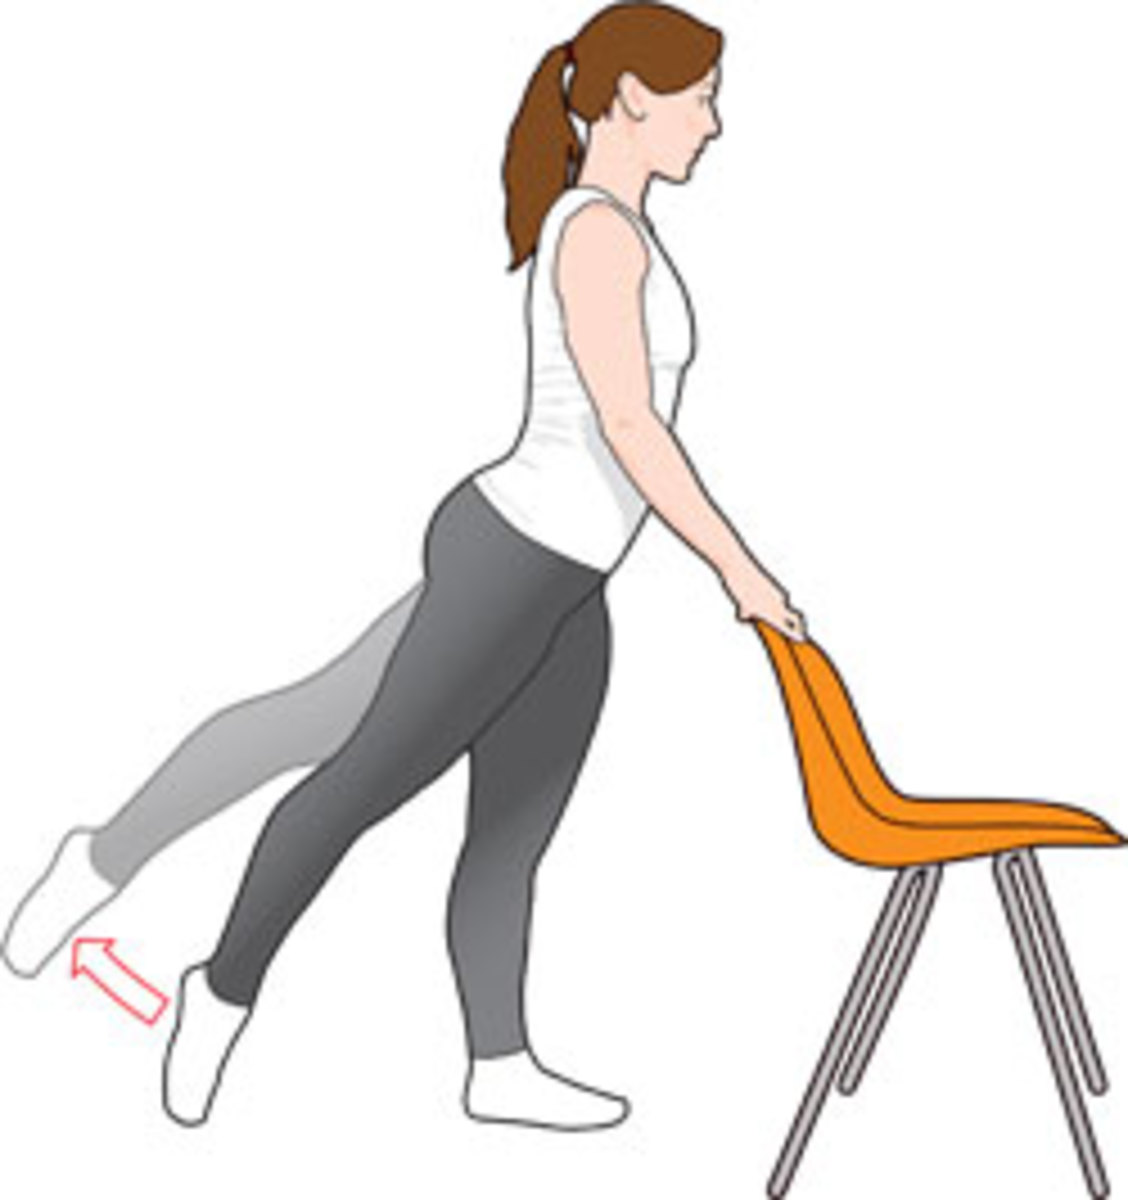 basic leg lifts demonstrated in an illustration of a female with an orange chair